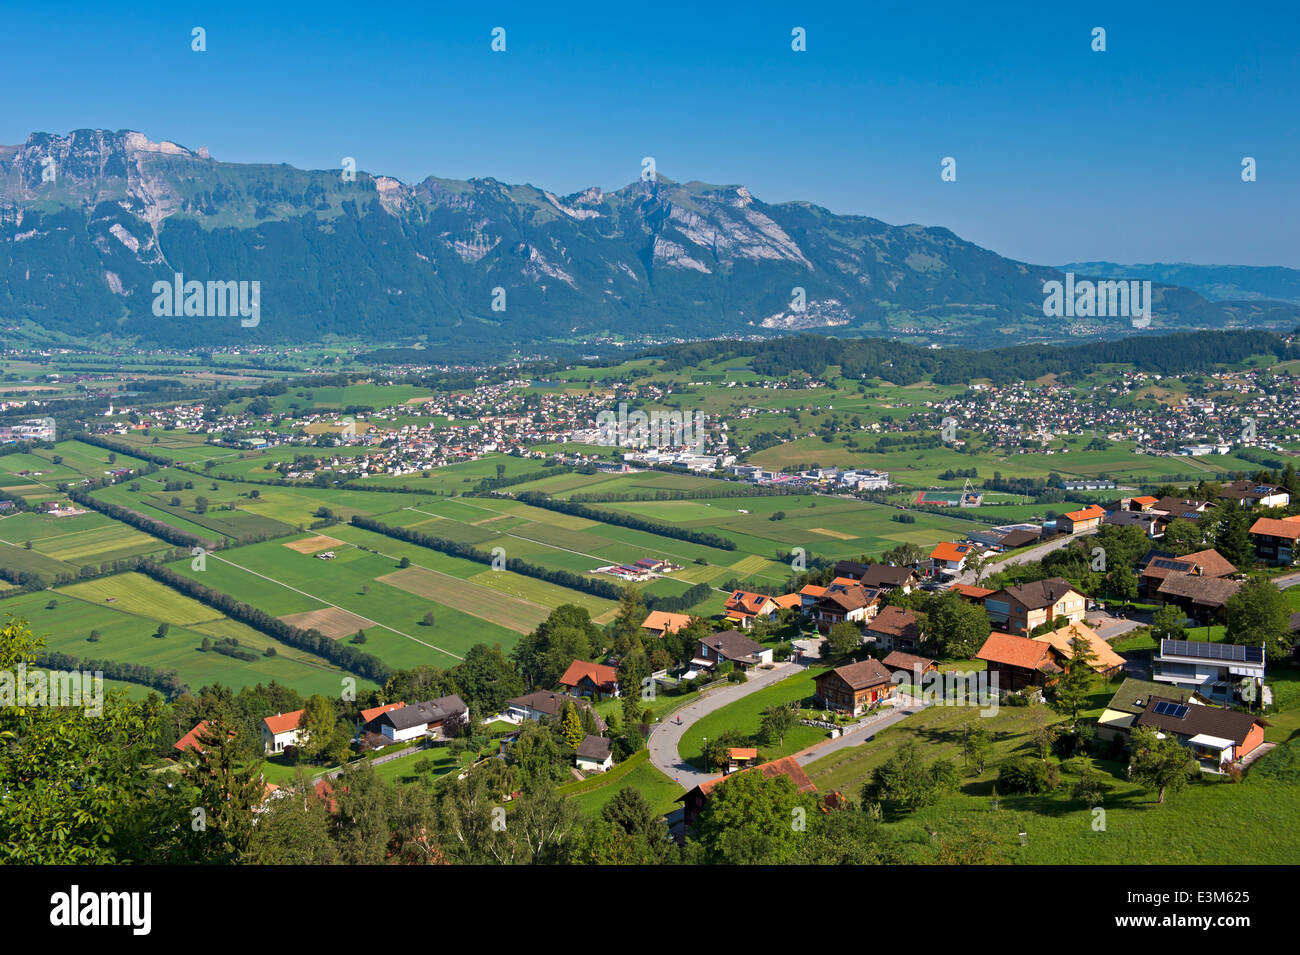 View from Planken across the Rhine valley to the Alpstein mountain range, Principality of Liechtenstein - Stock Image